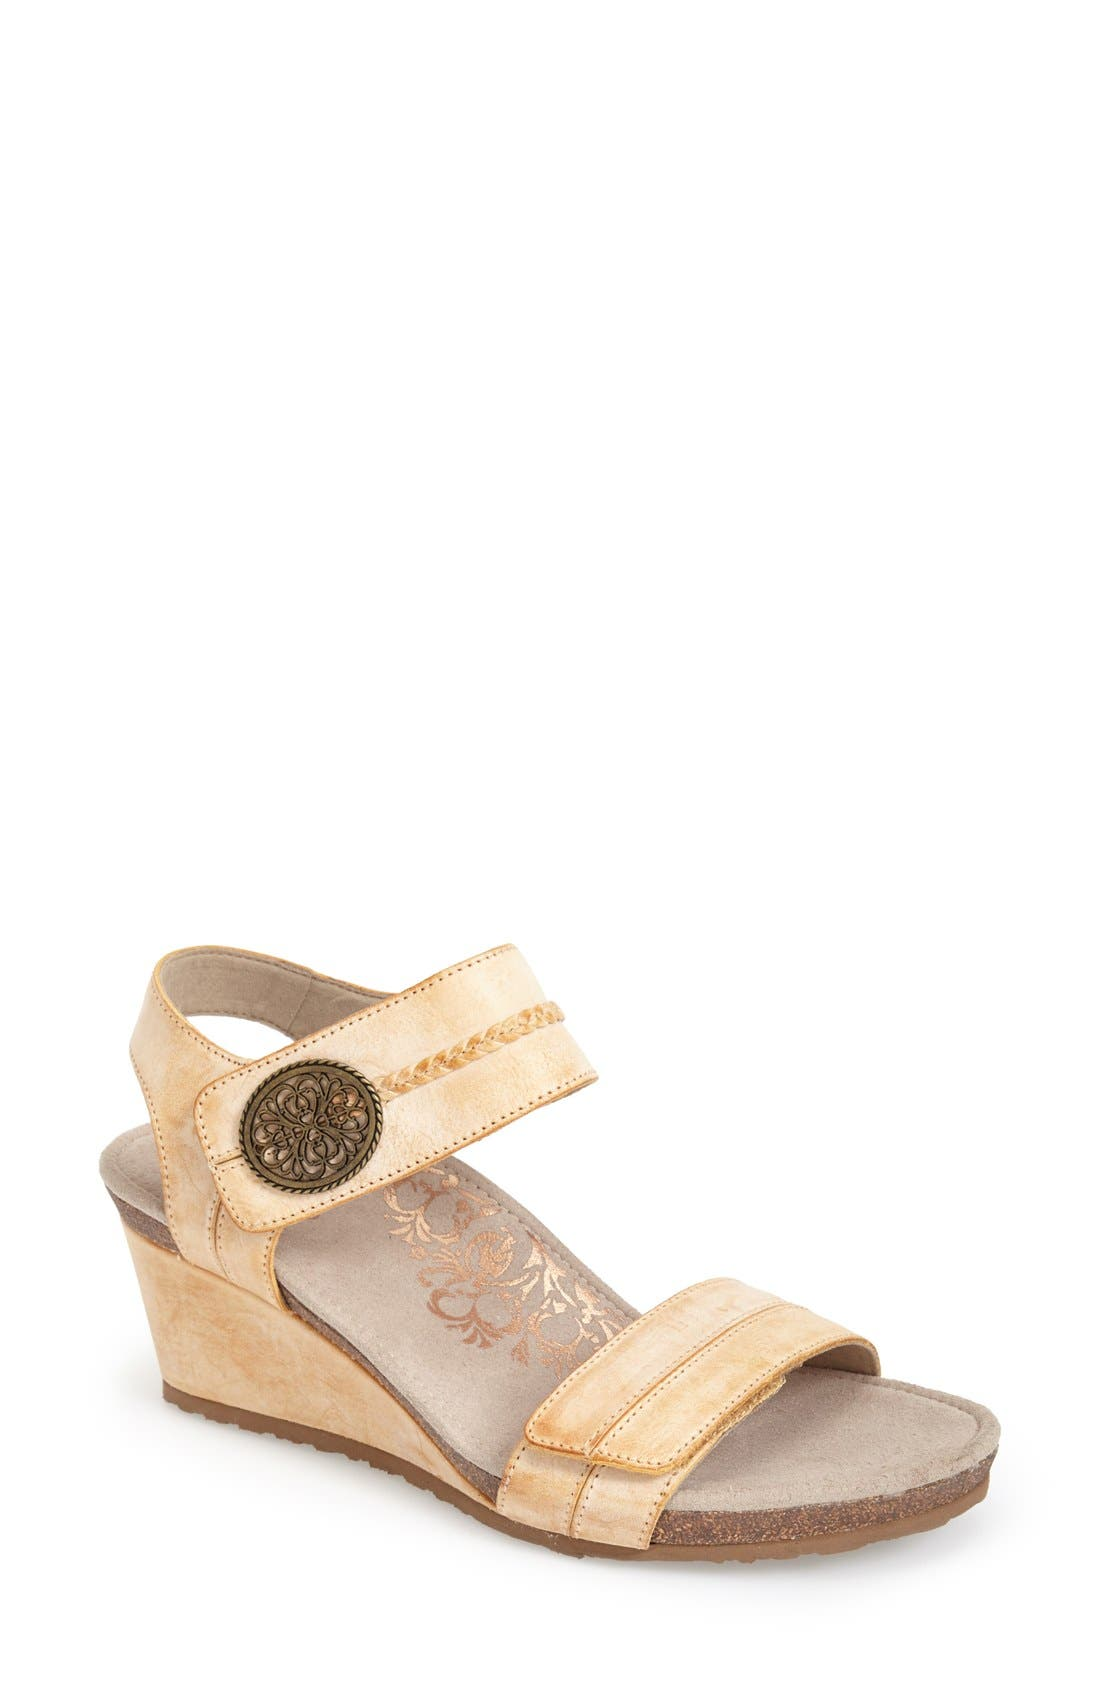 Aetrex 'Arielle' Leather Wedge Sandal (Women)